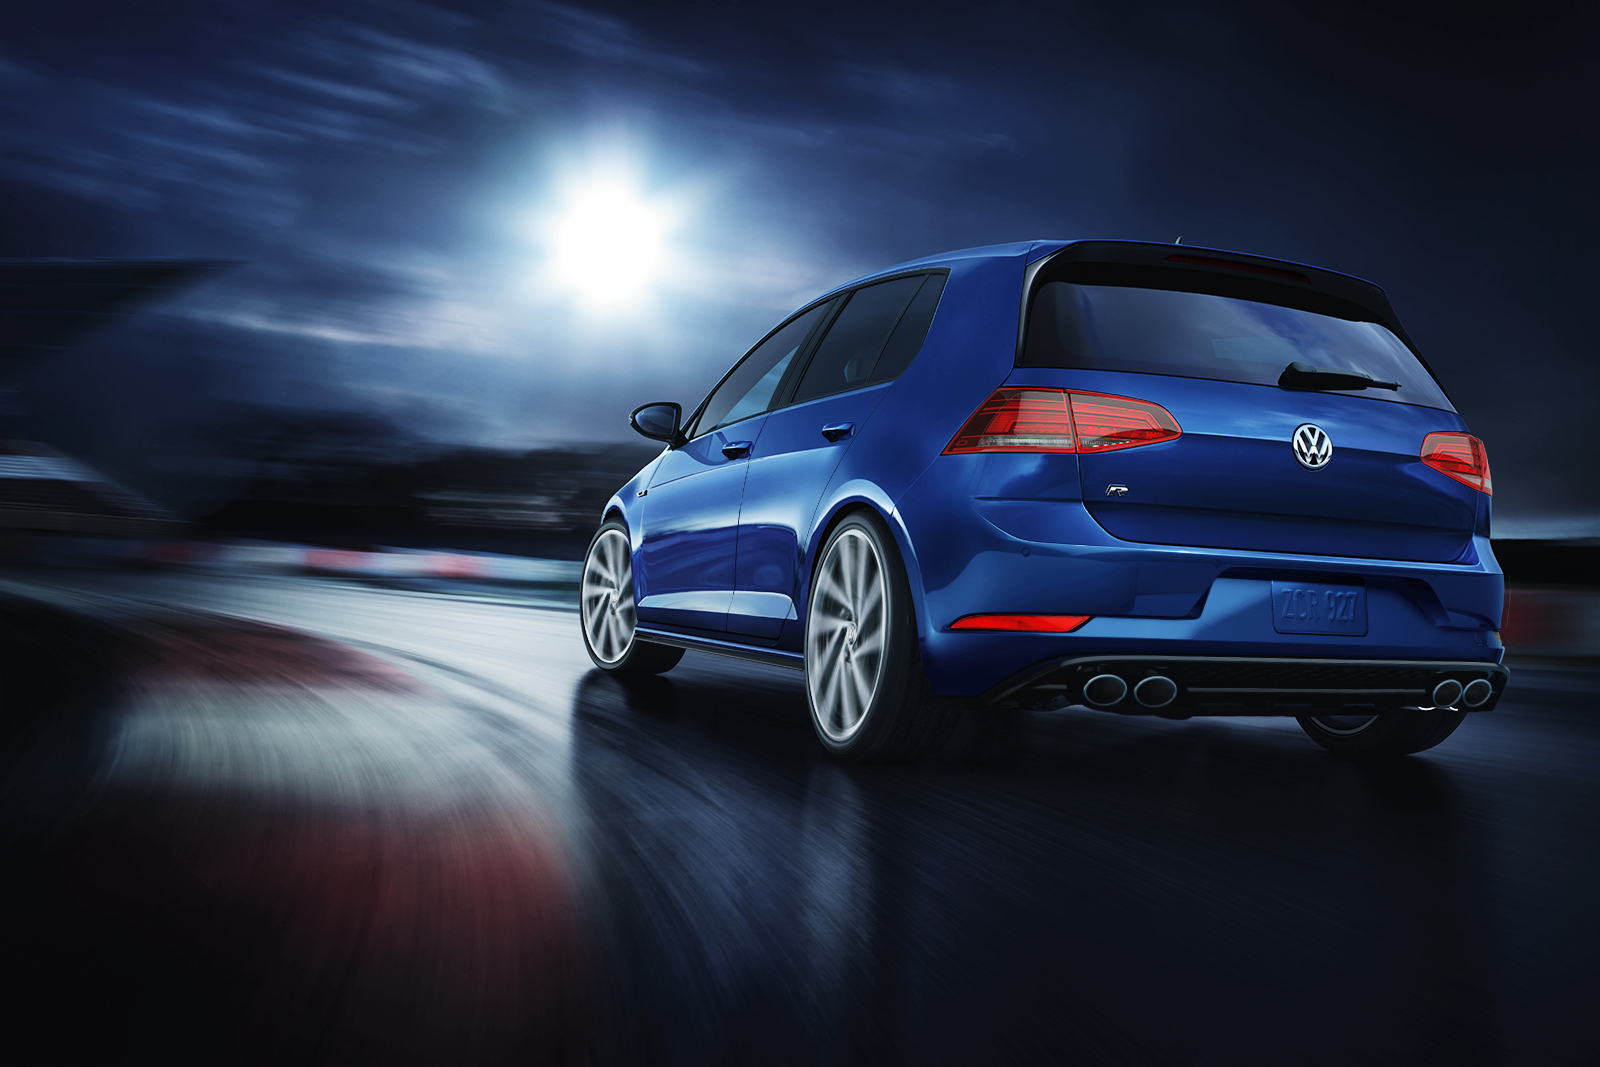 2018 Volkswagen Golf R Rear Blue Exterior